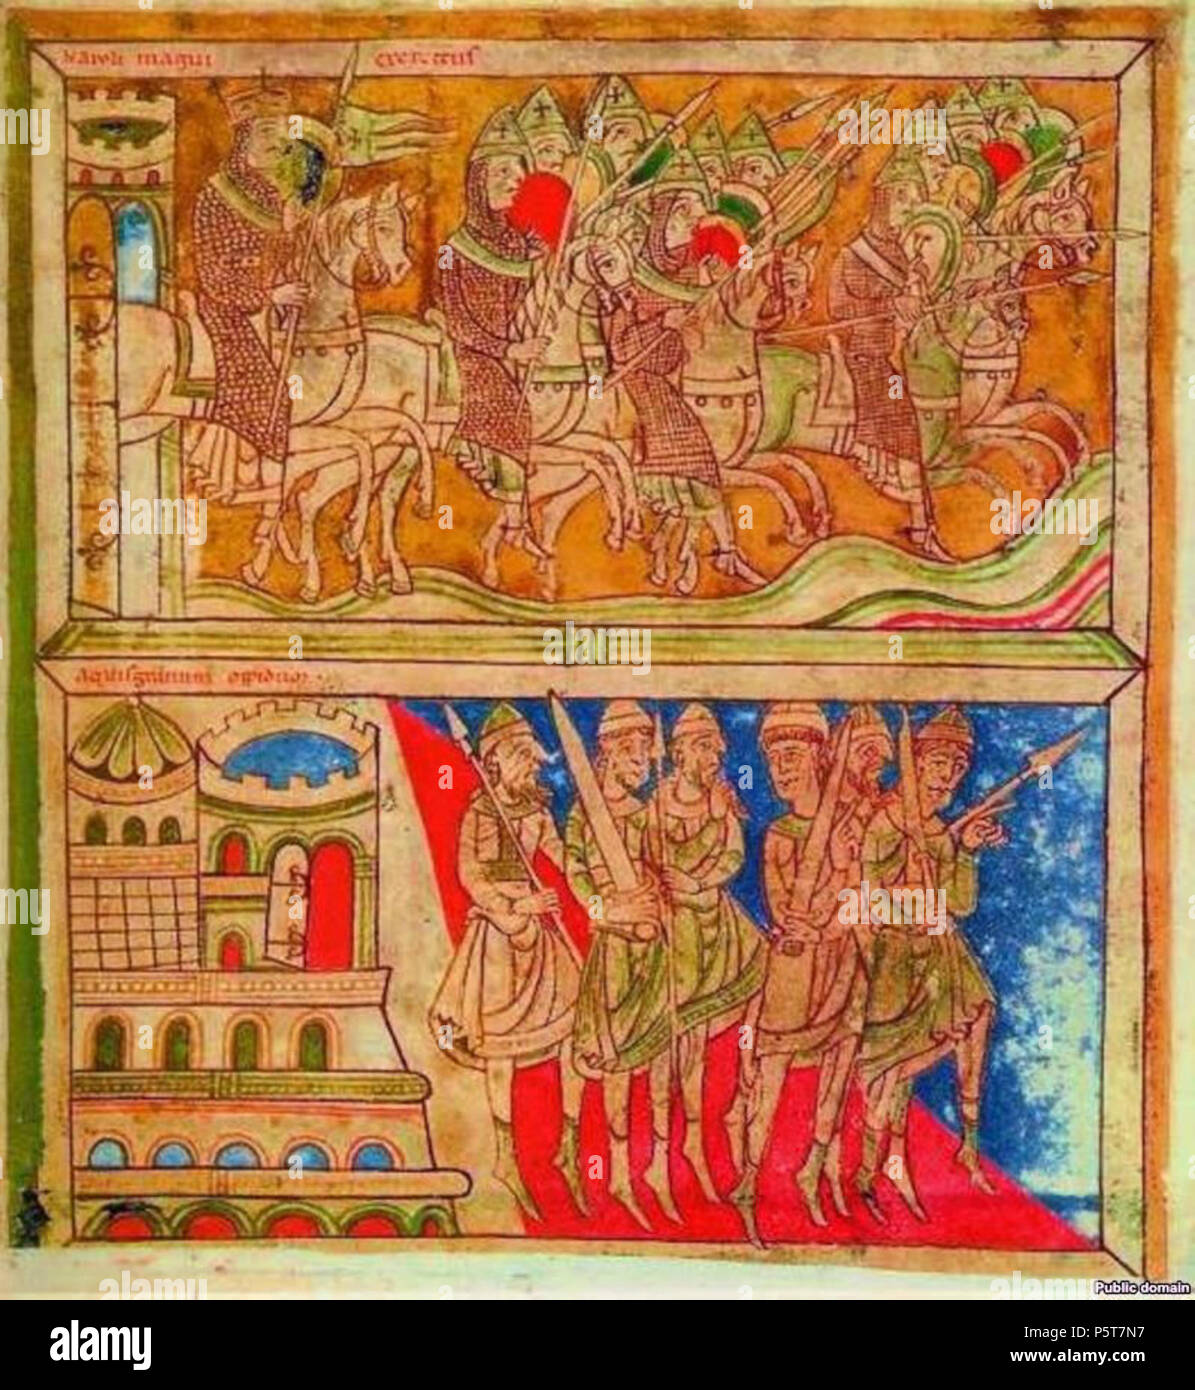 N/A.     This file was uploaded with Commonist.  Codex Calixtinus (Liber Sancti Jacobi), 1135-1139AD Folio 162v Charlemagne, Roland and the Knights on their way to Compostela, Spain Held in the Cathedral of Santiago de Compostela, Galicia (Spain) . 1135-1139AD. Liber Sancti Jacobi 324 Charlemagne, Roland and the Knights on their way to Compostela, Spain - Stock Image